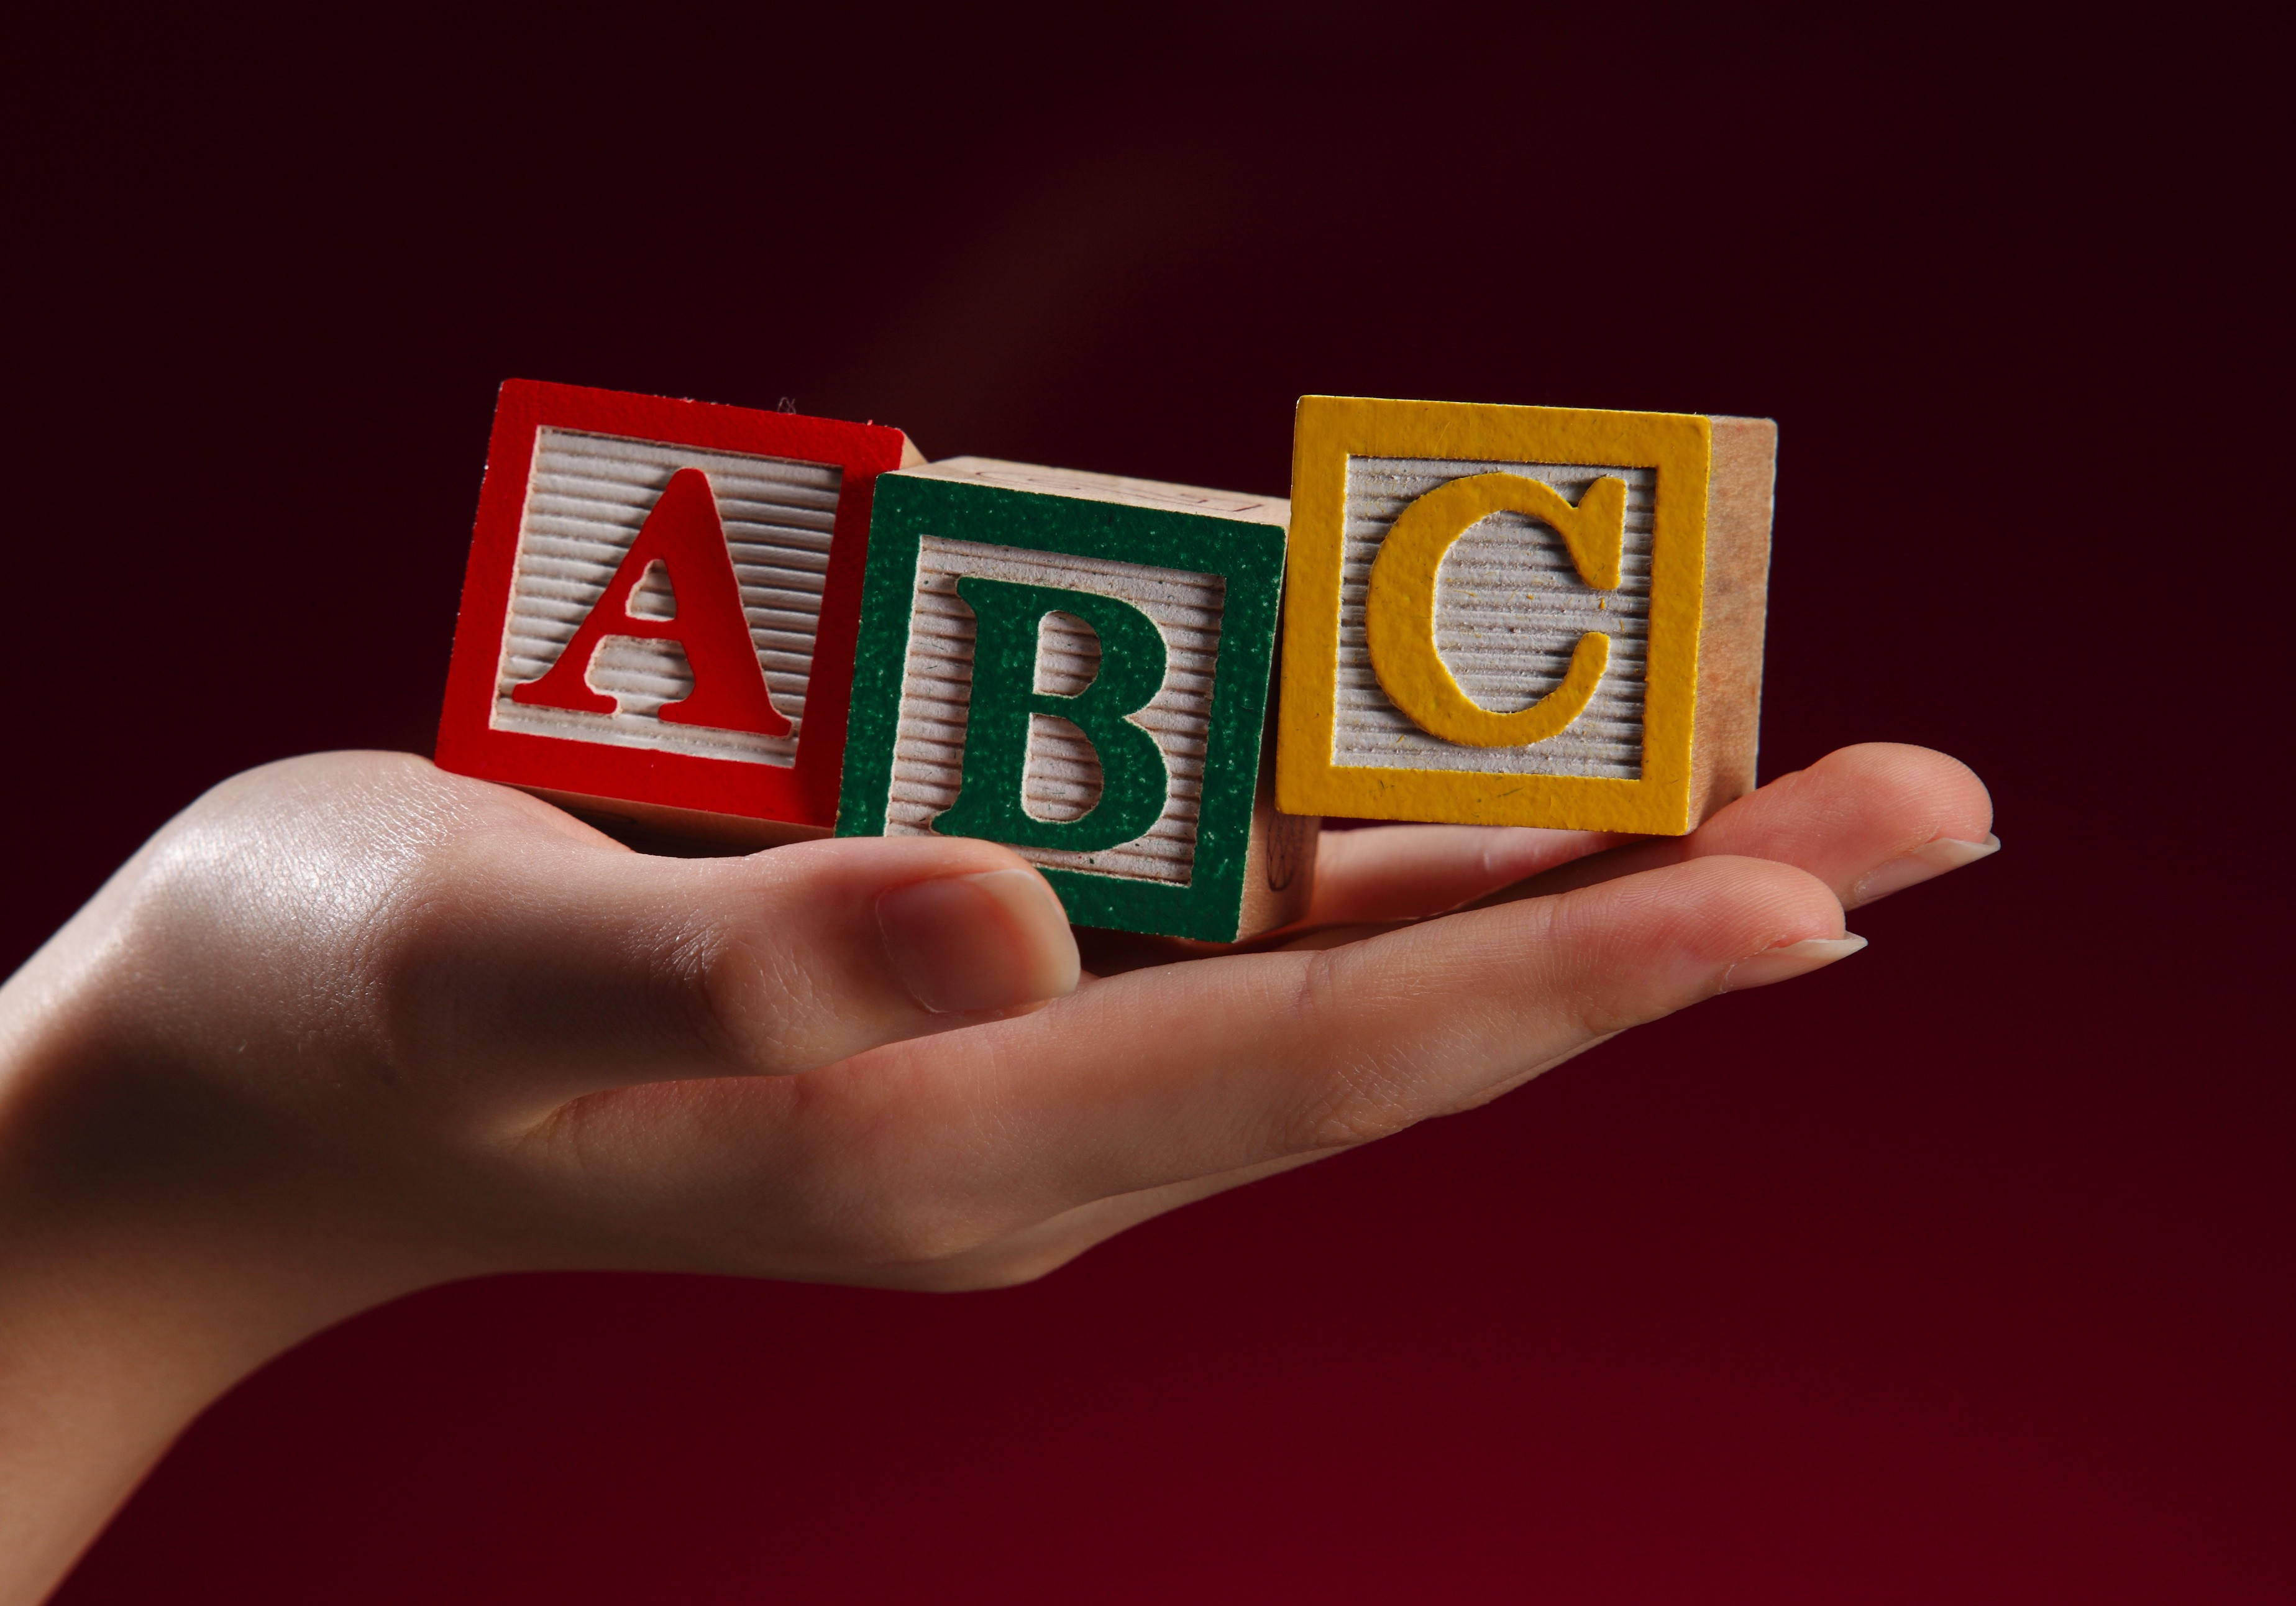 The ABC's of Me and XYZ's of You